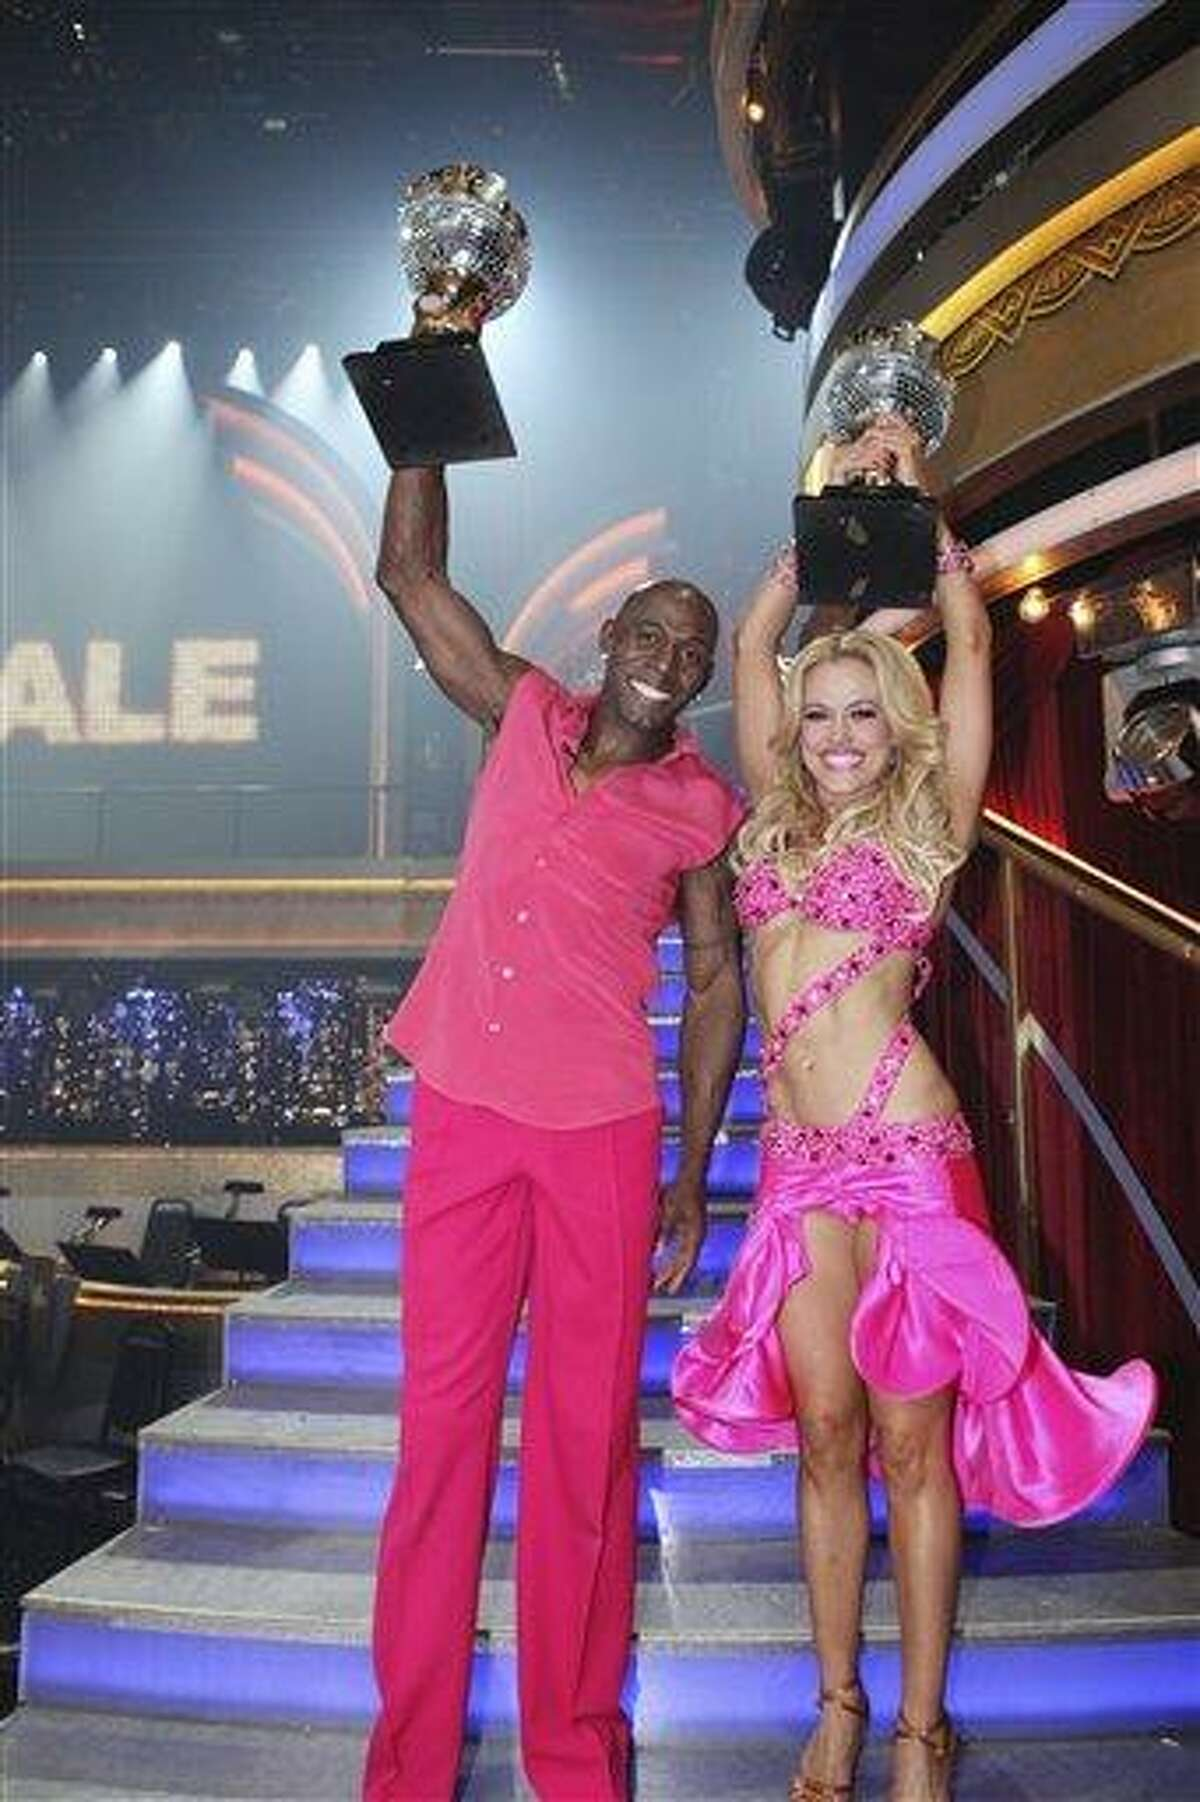 In a photo provided by ABC, Donald Driver and Peta Murgatroyd hold up their trophies after they were crowned